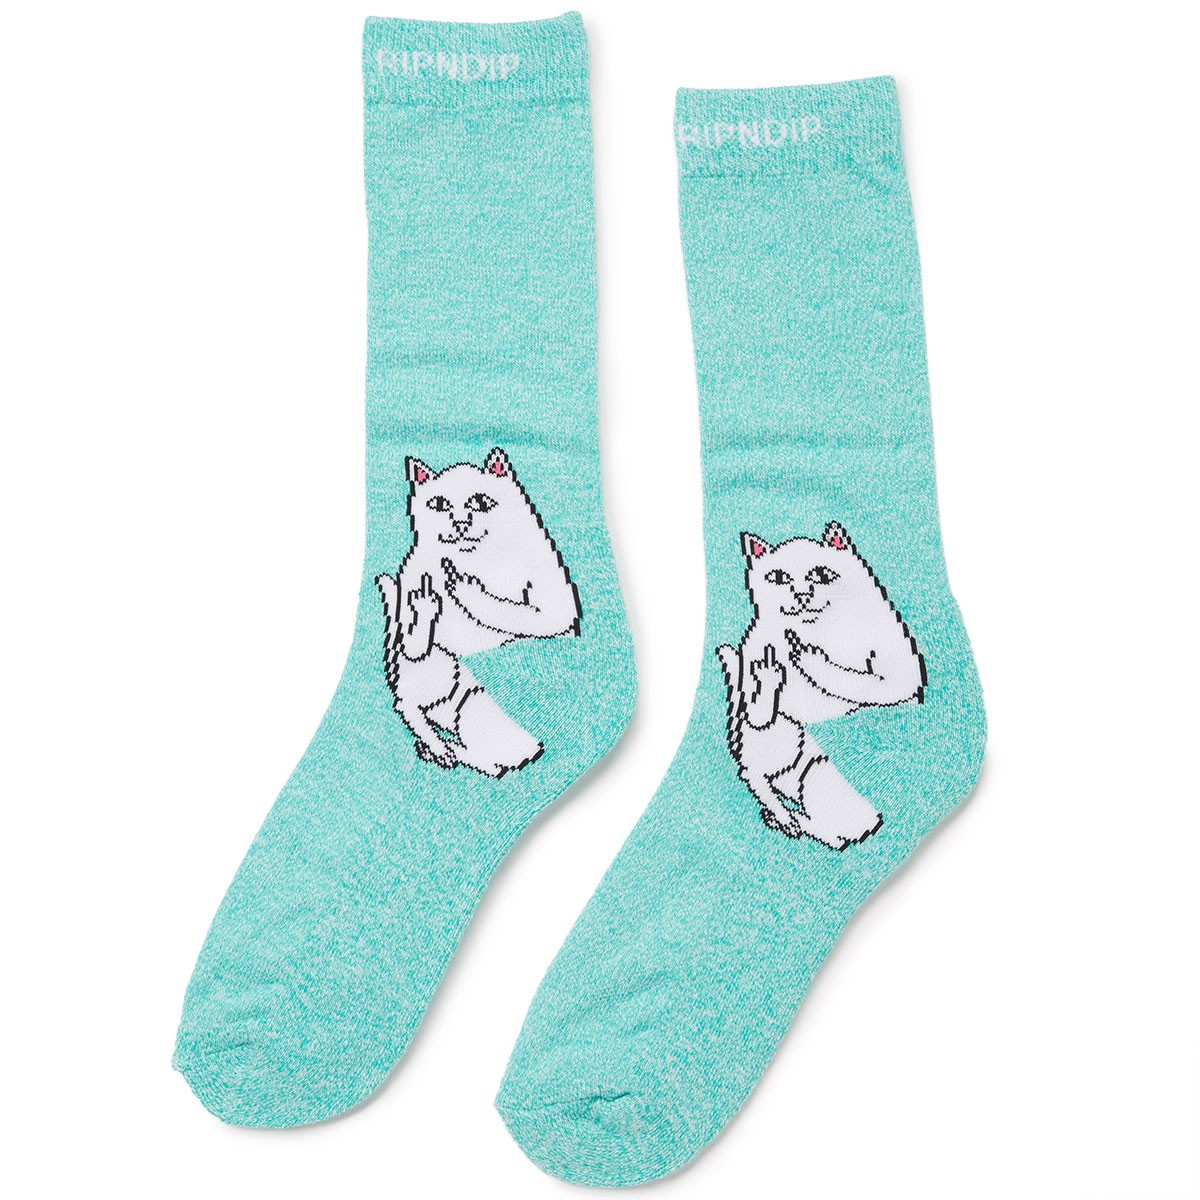 Rip N Dip Lord Nermal Socks - Aqua